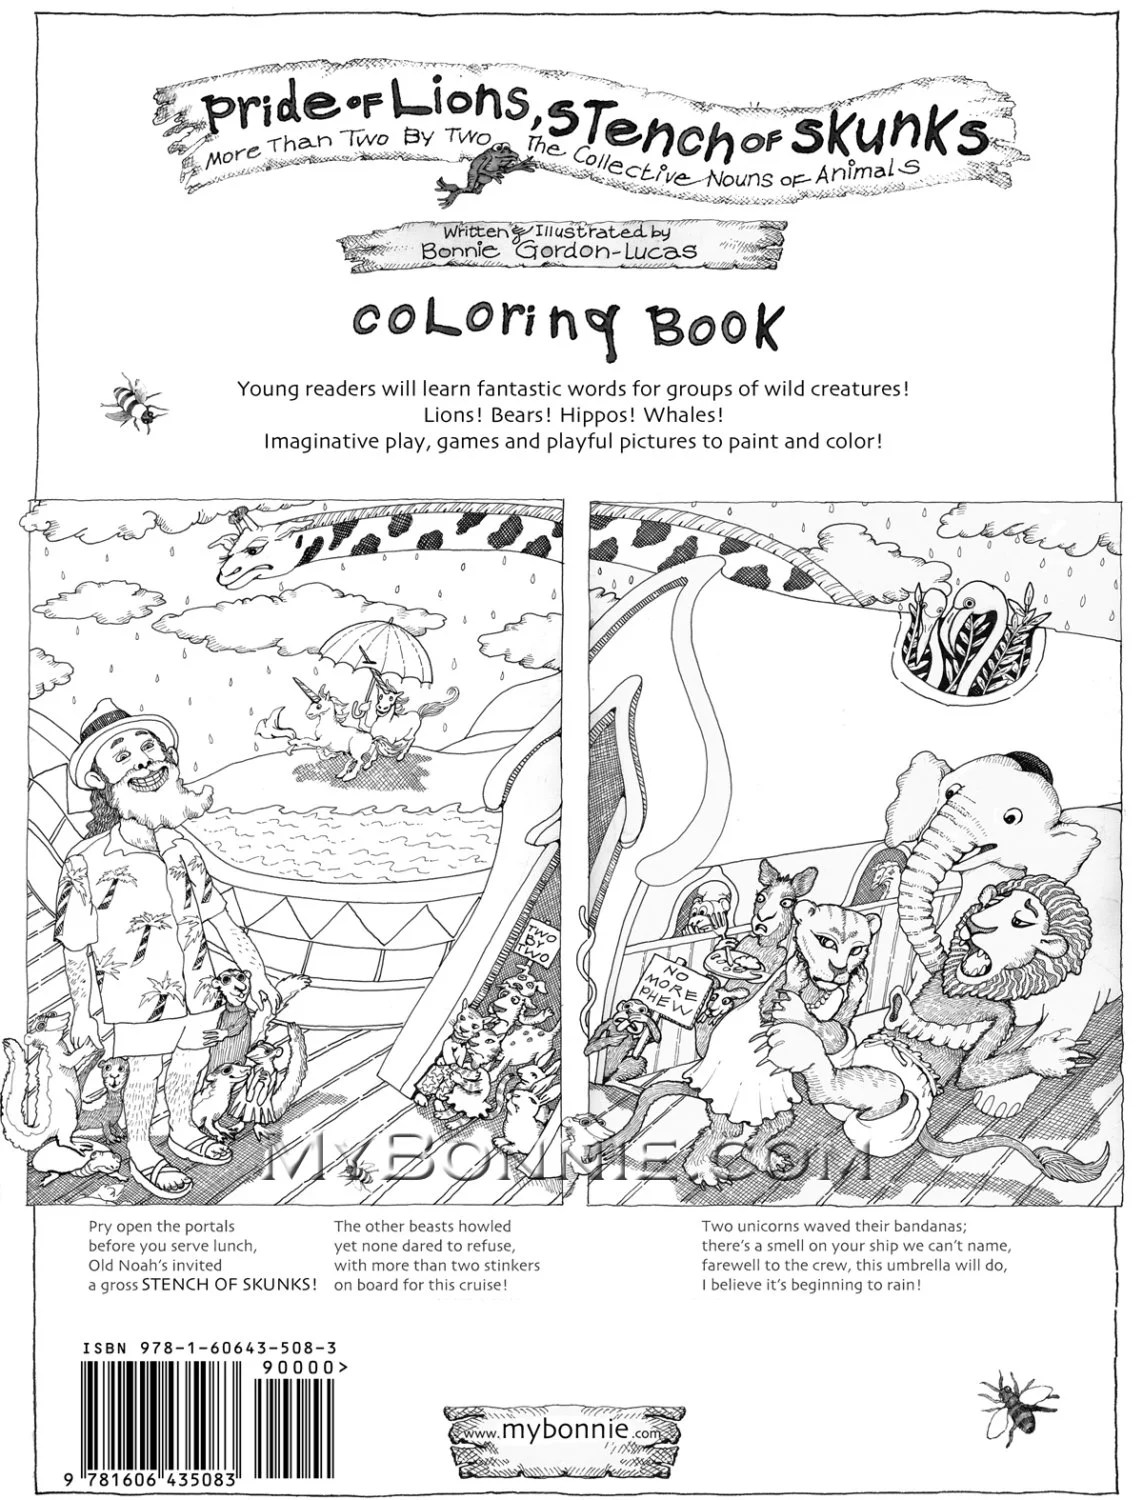 PRIDE of LIONS Stench of SKUNKS. Coloring Book. by